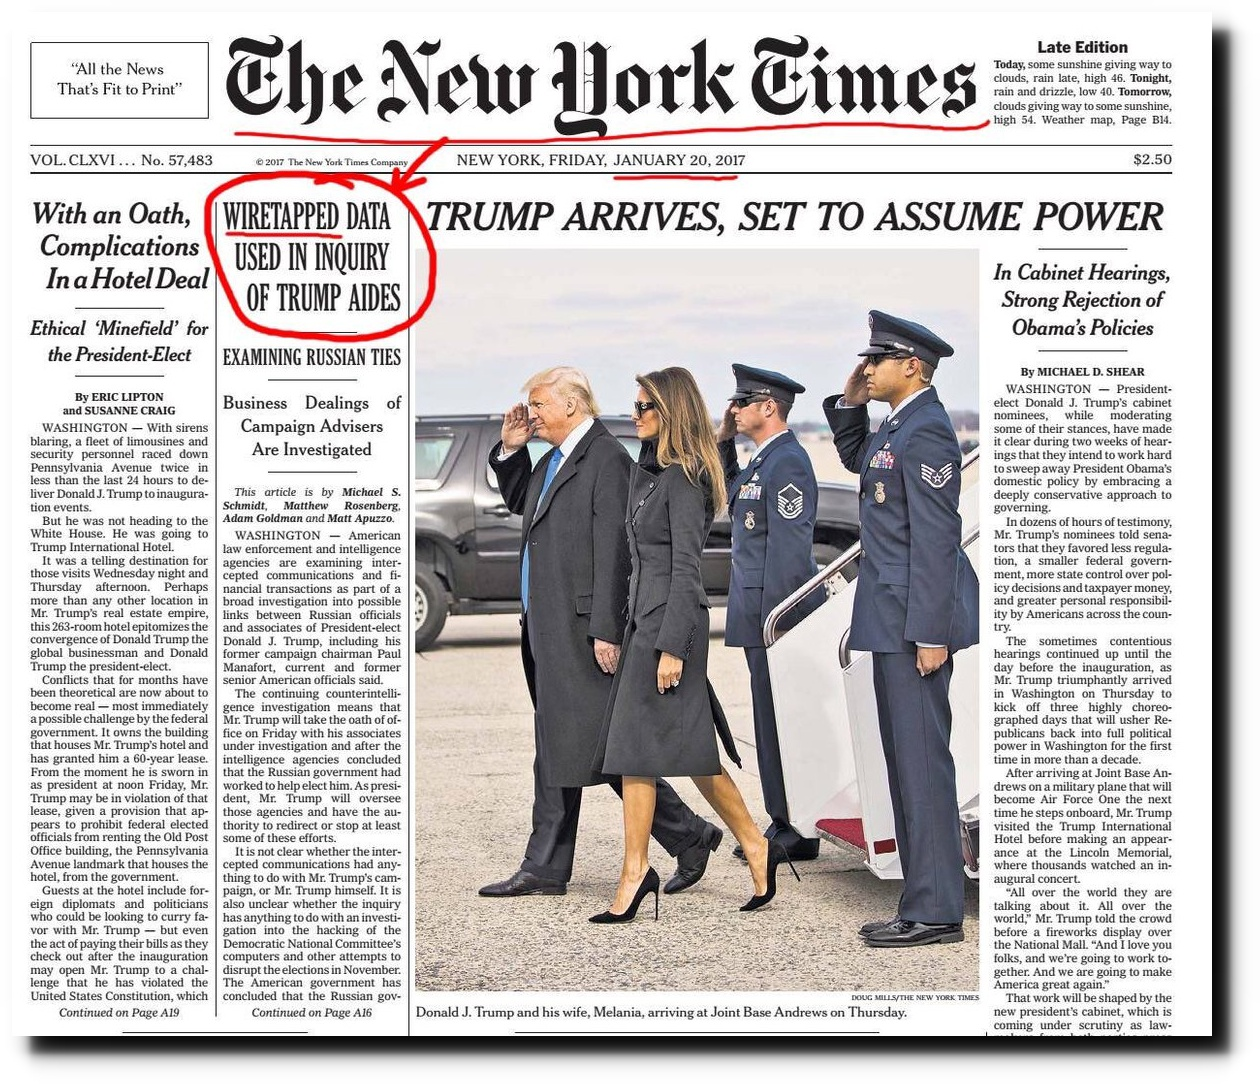 Latest Scientific News: Fake News New York Times Fails To Cover Their Tracks